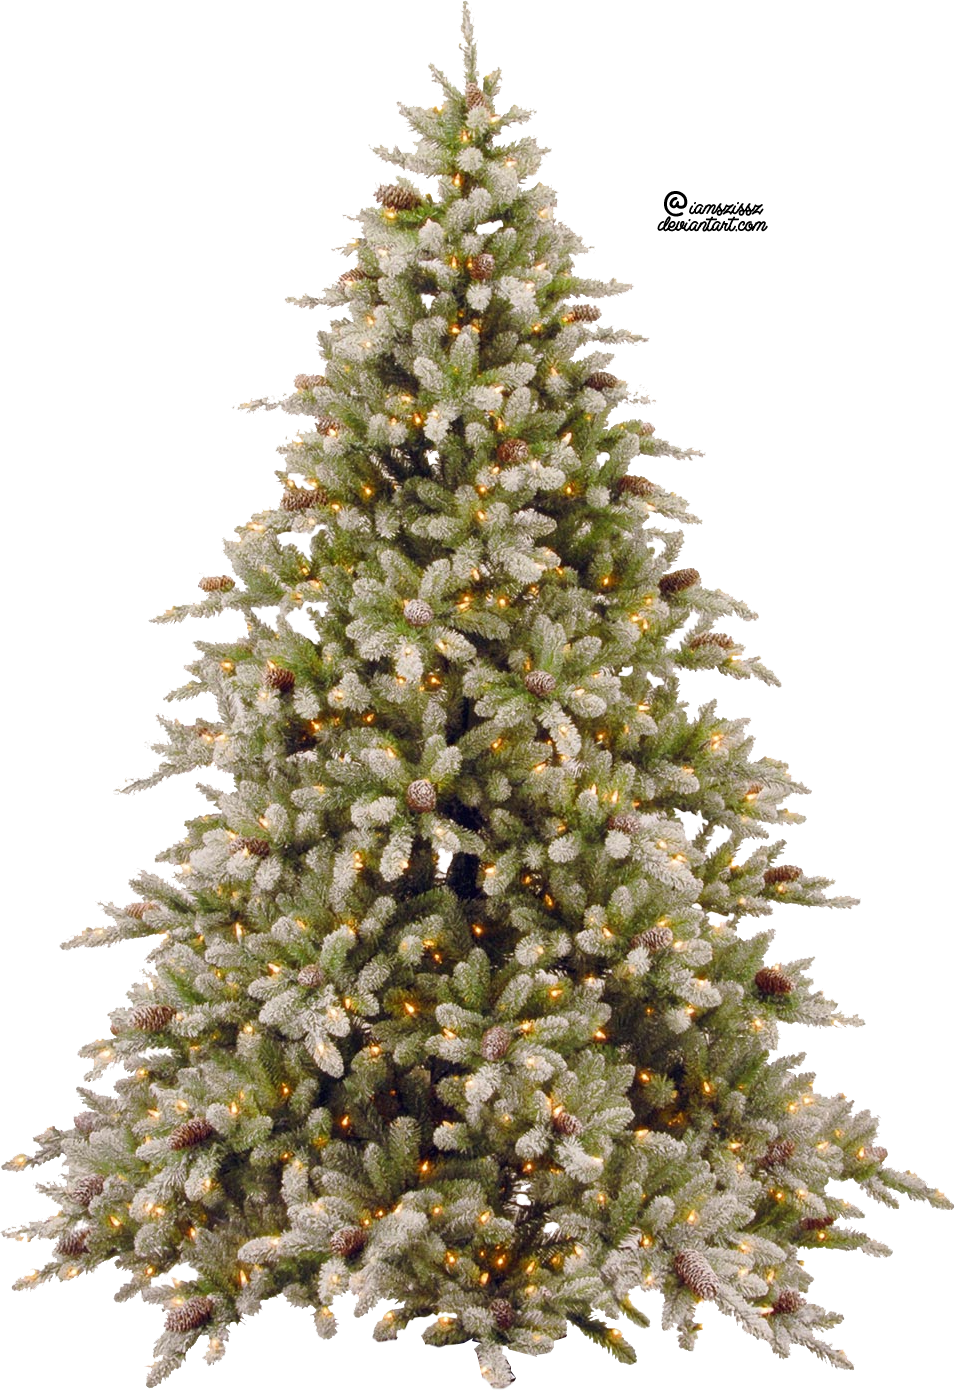 Christmas Tree Png Hd PNG Image - Christmas Tree PNG